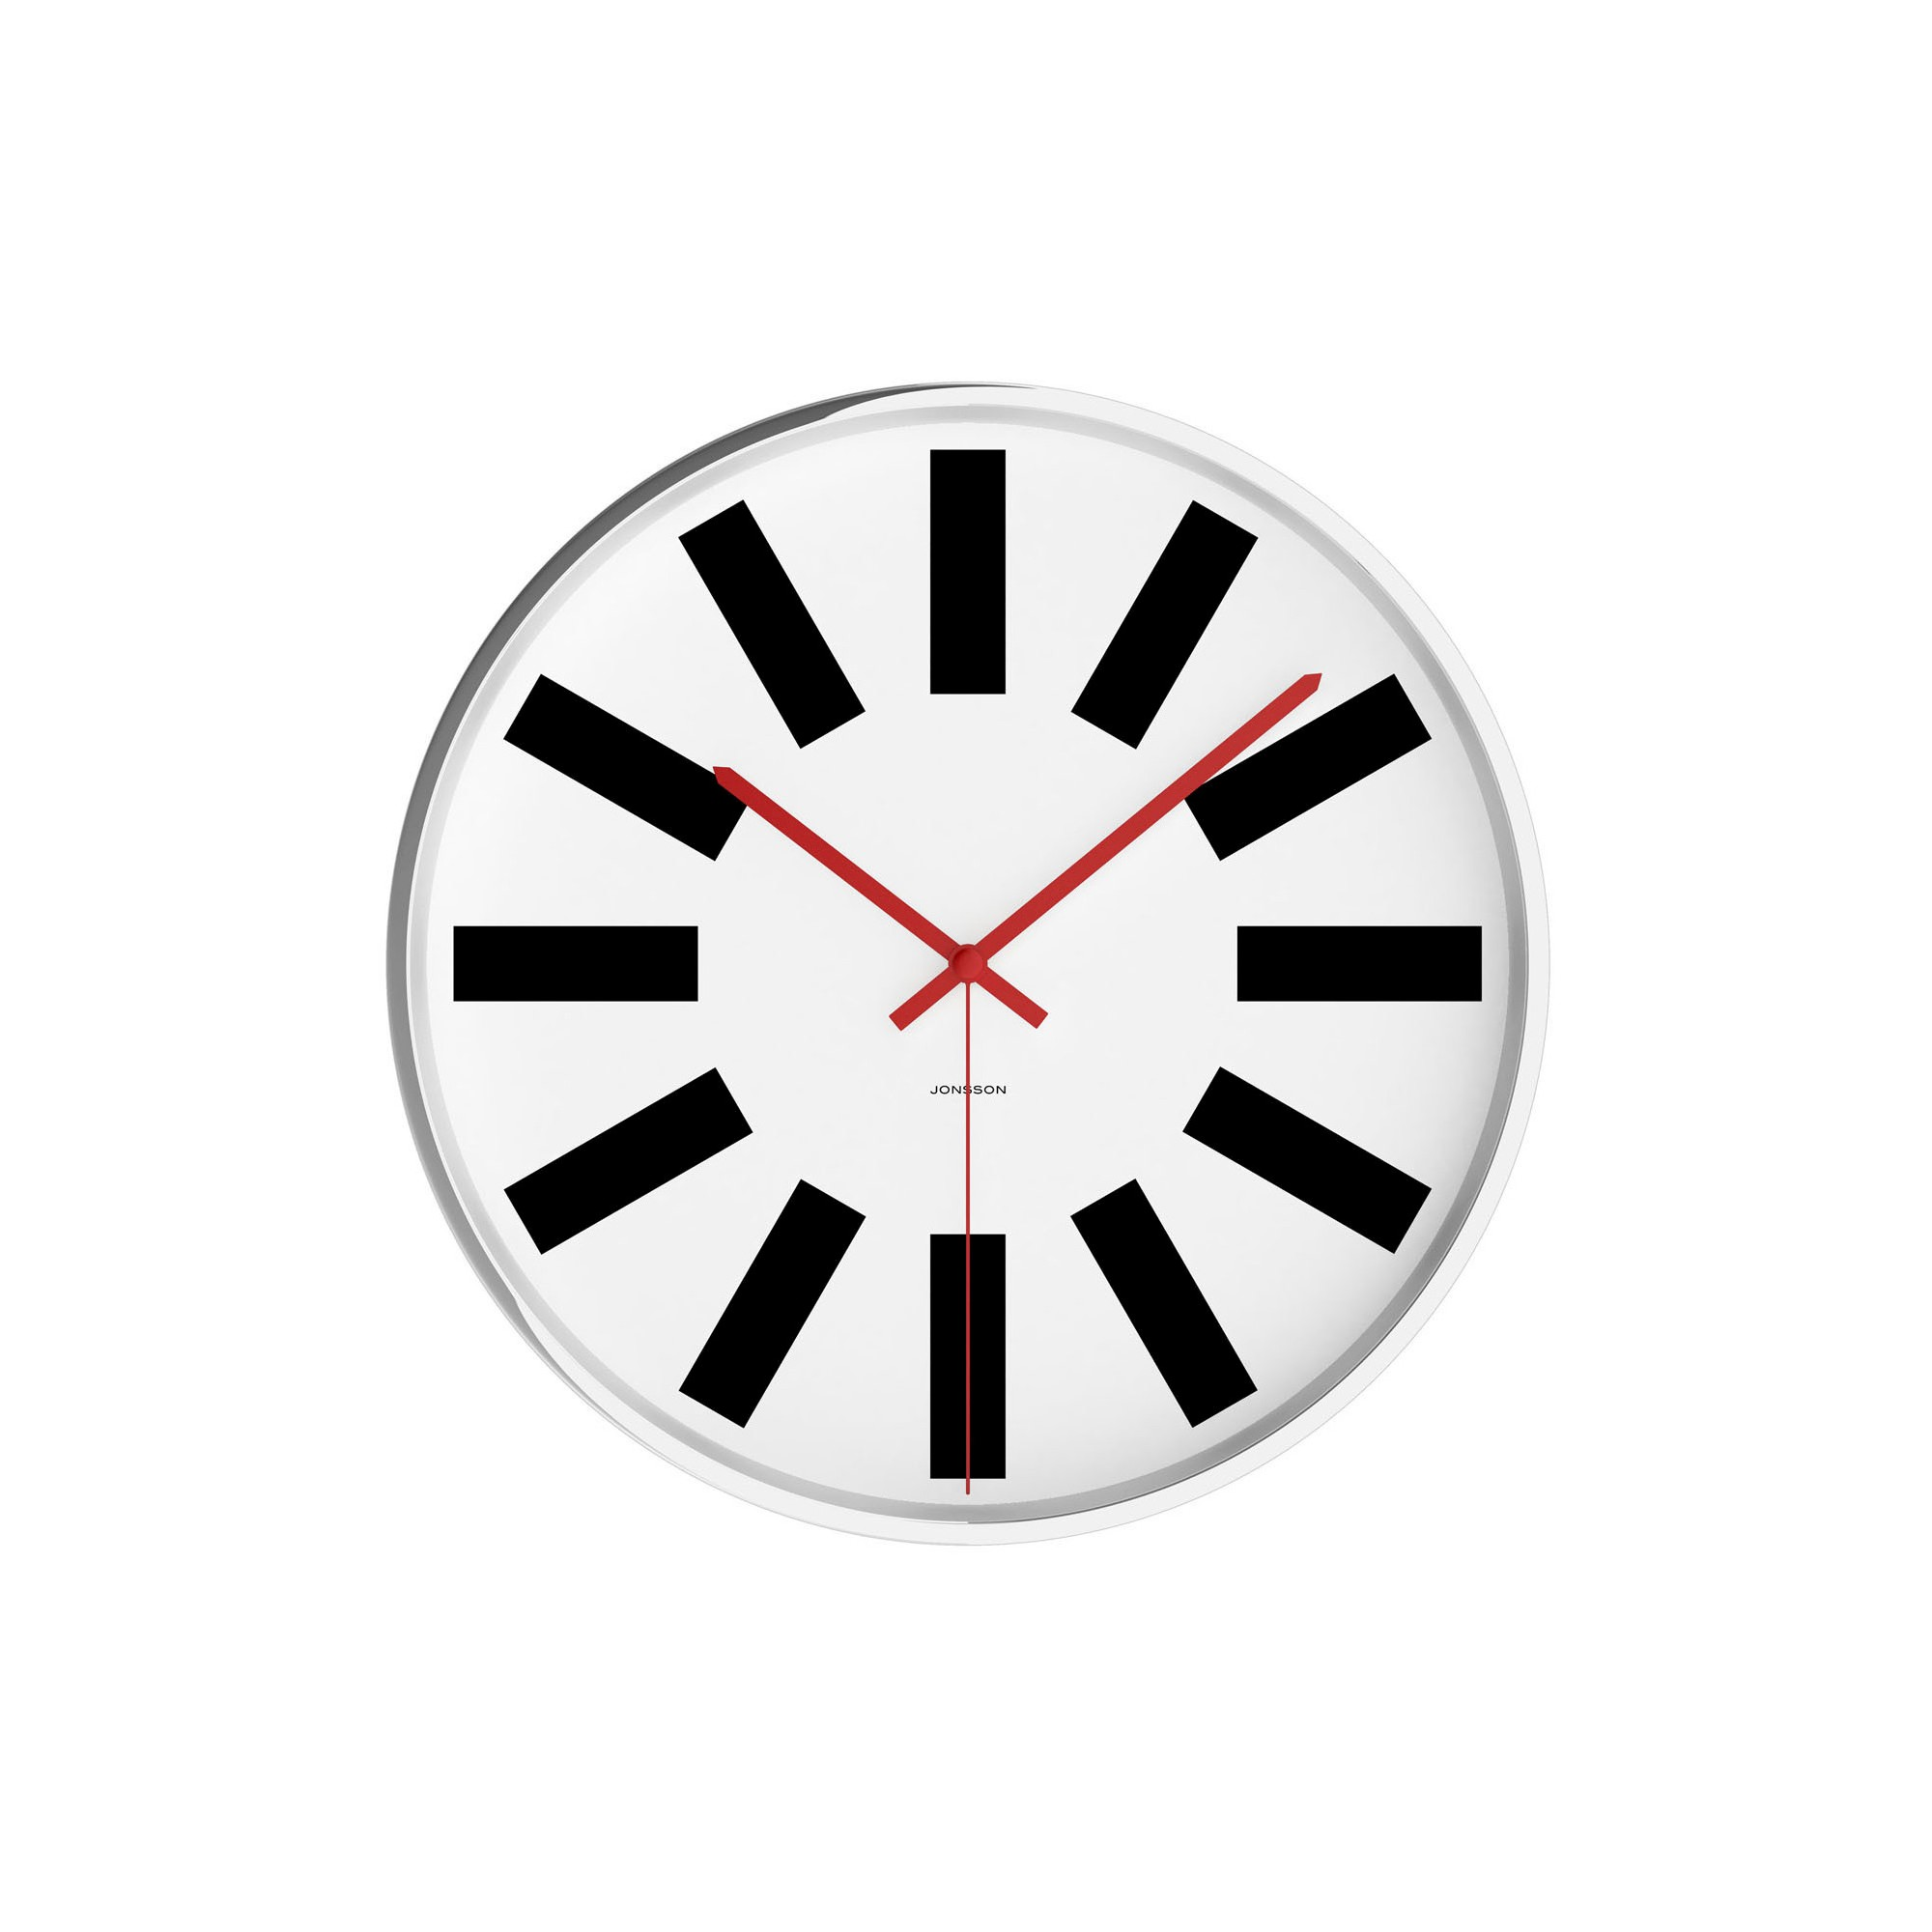 Chrome 12 Round Wall Clock White Jonsson Timeware With Images Wall Clock Round Wall Clocks Clock